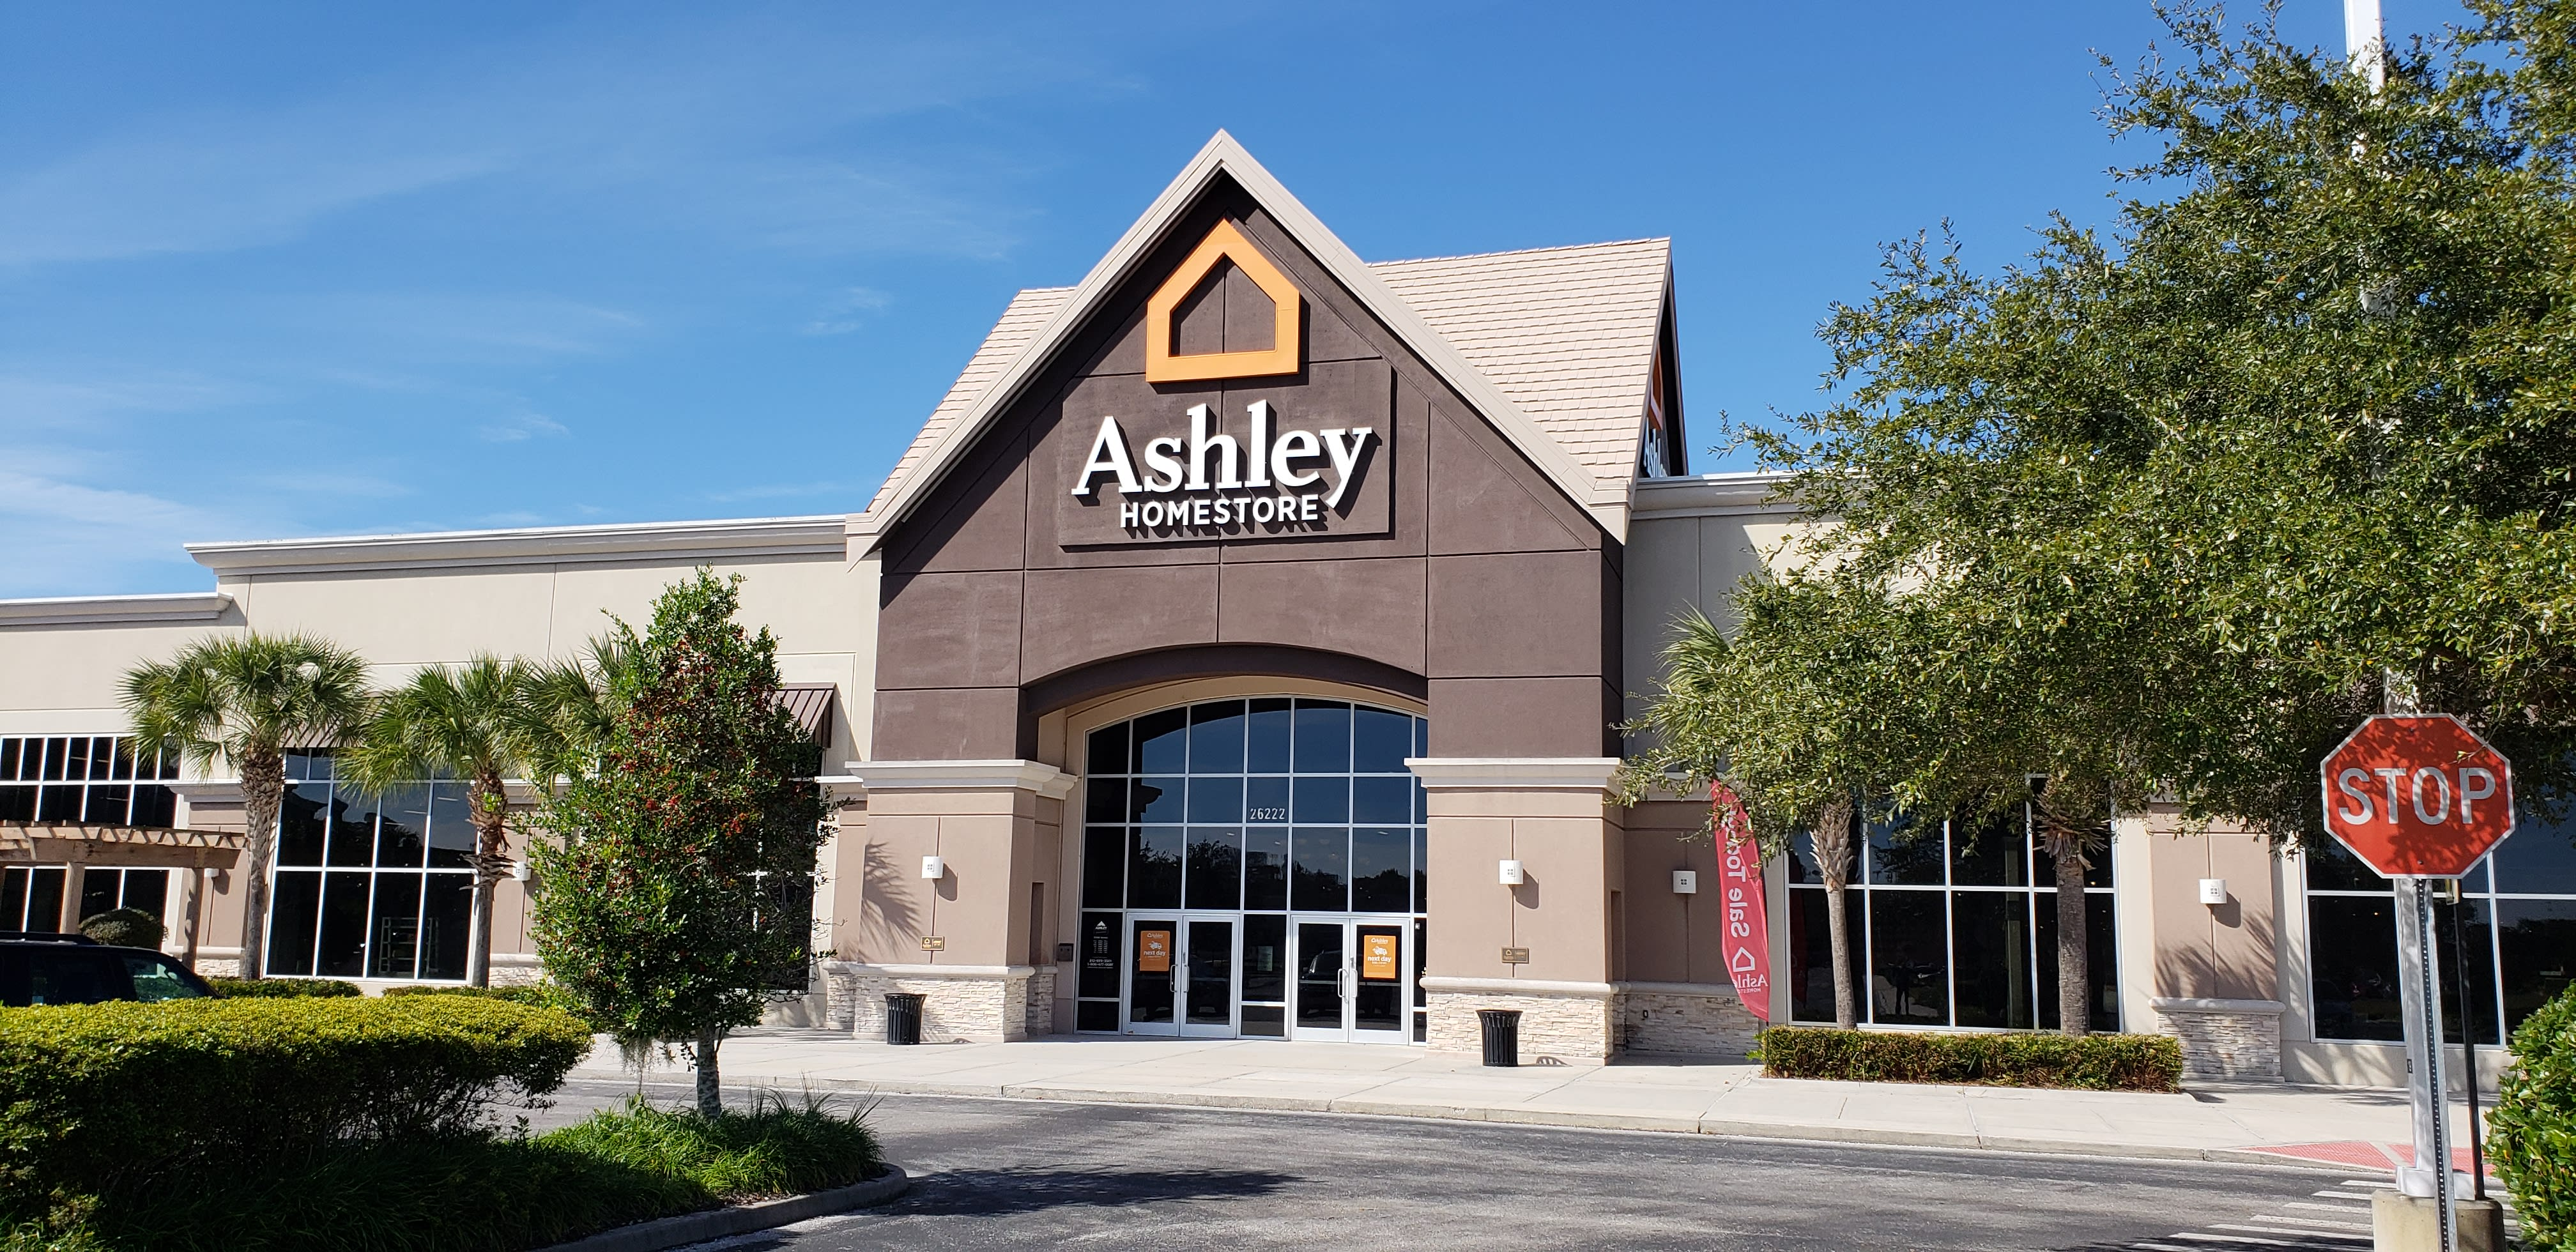 Furniture And Mattress Store In Wesley Chapel Fl Ashley Homestore